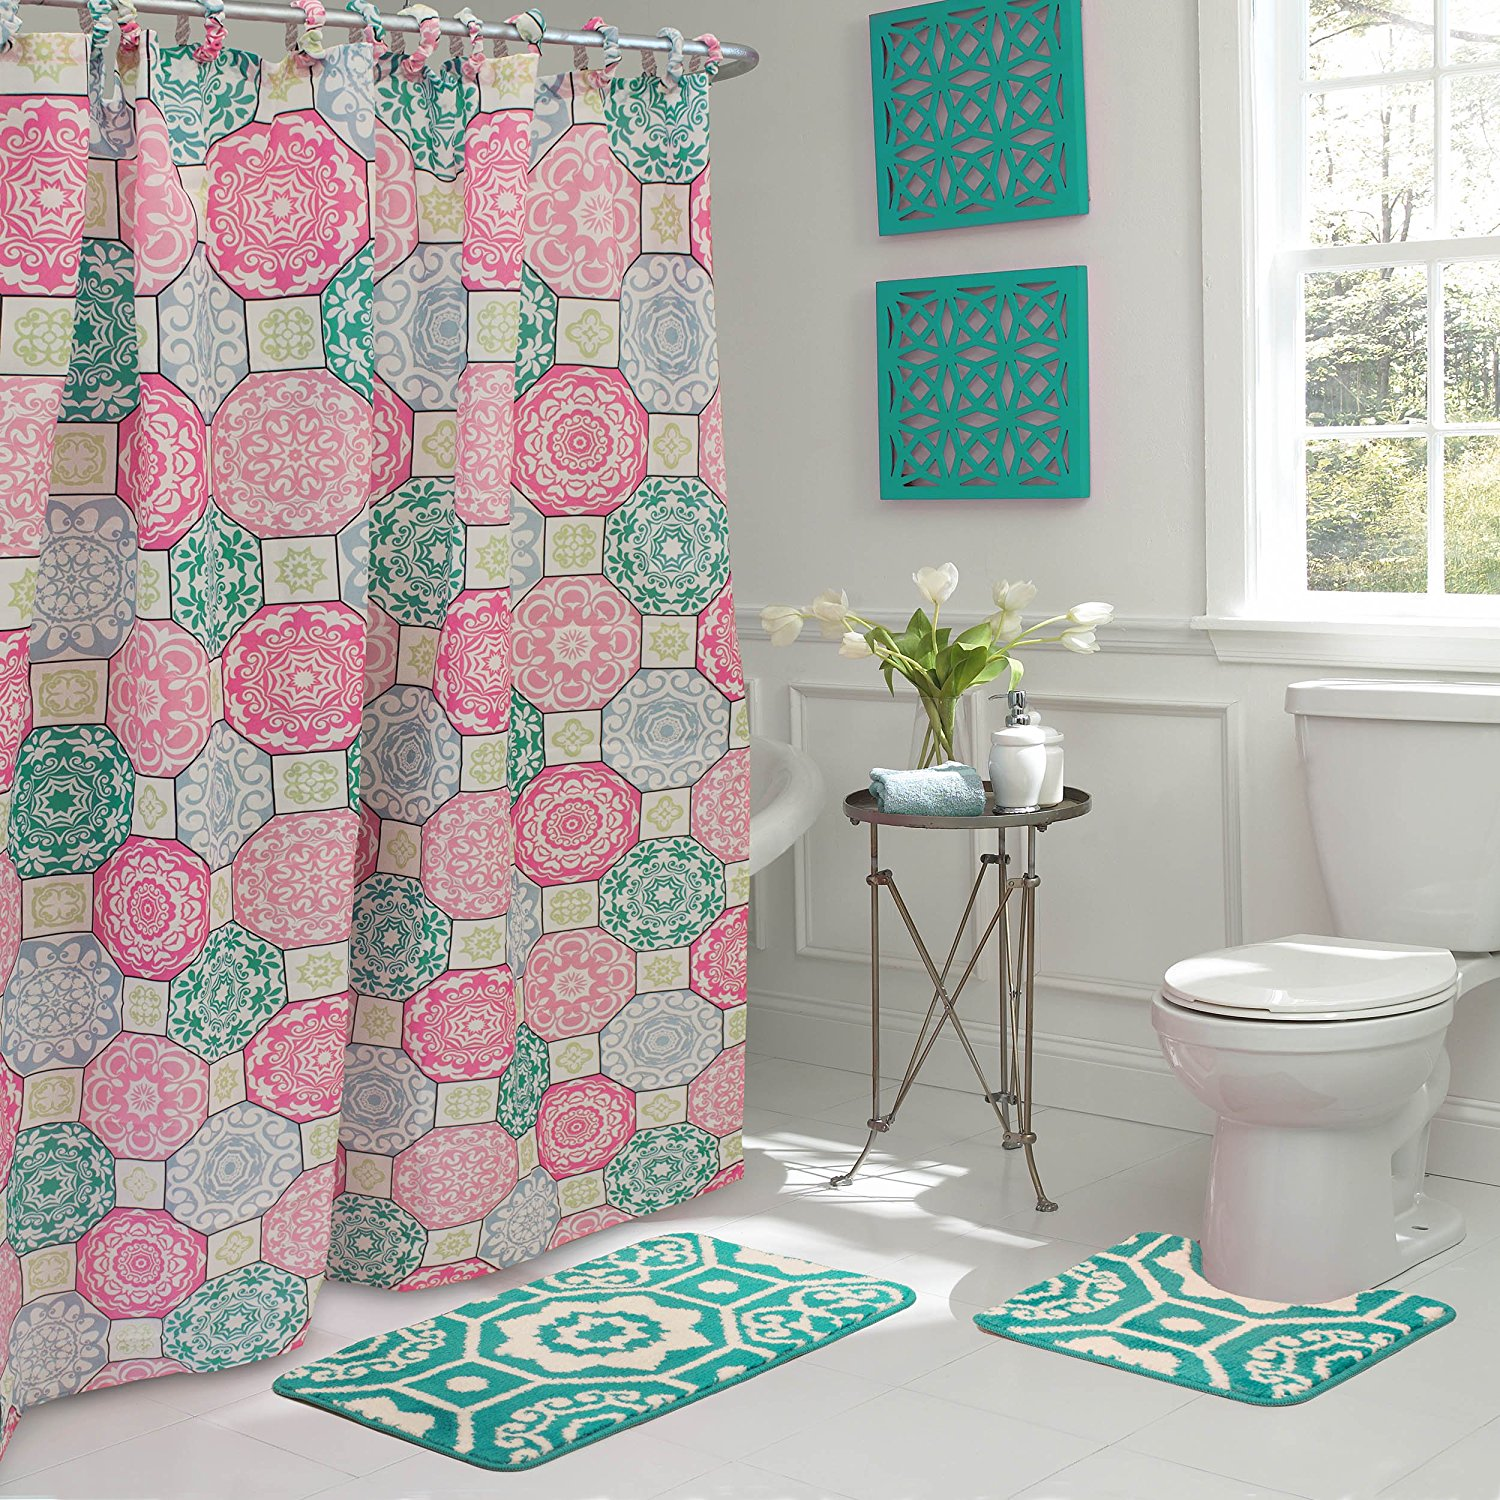 Bathroom sets with shower curtain and rugs selection for Addison interior design decoration wordpress theme nulled